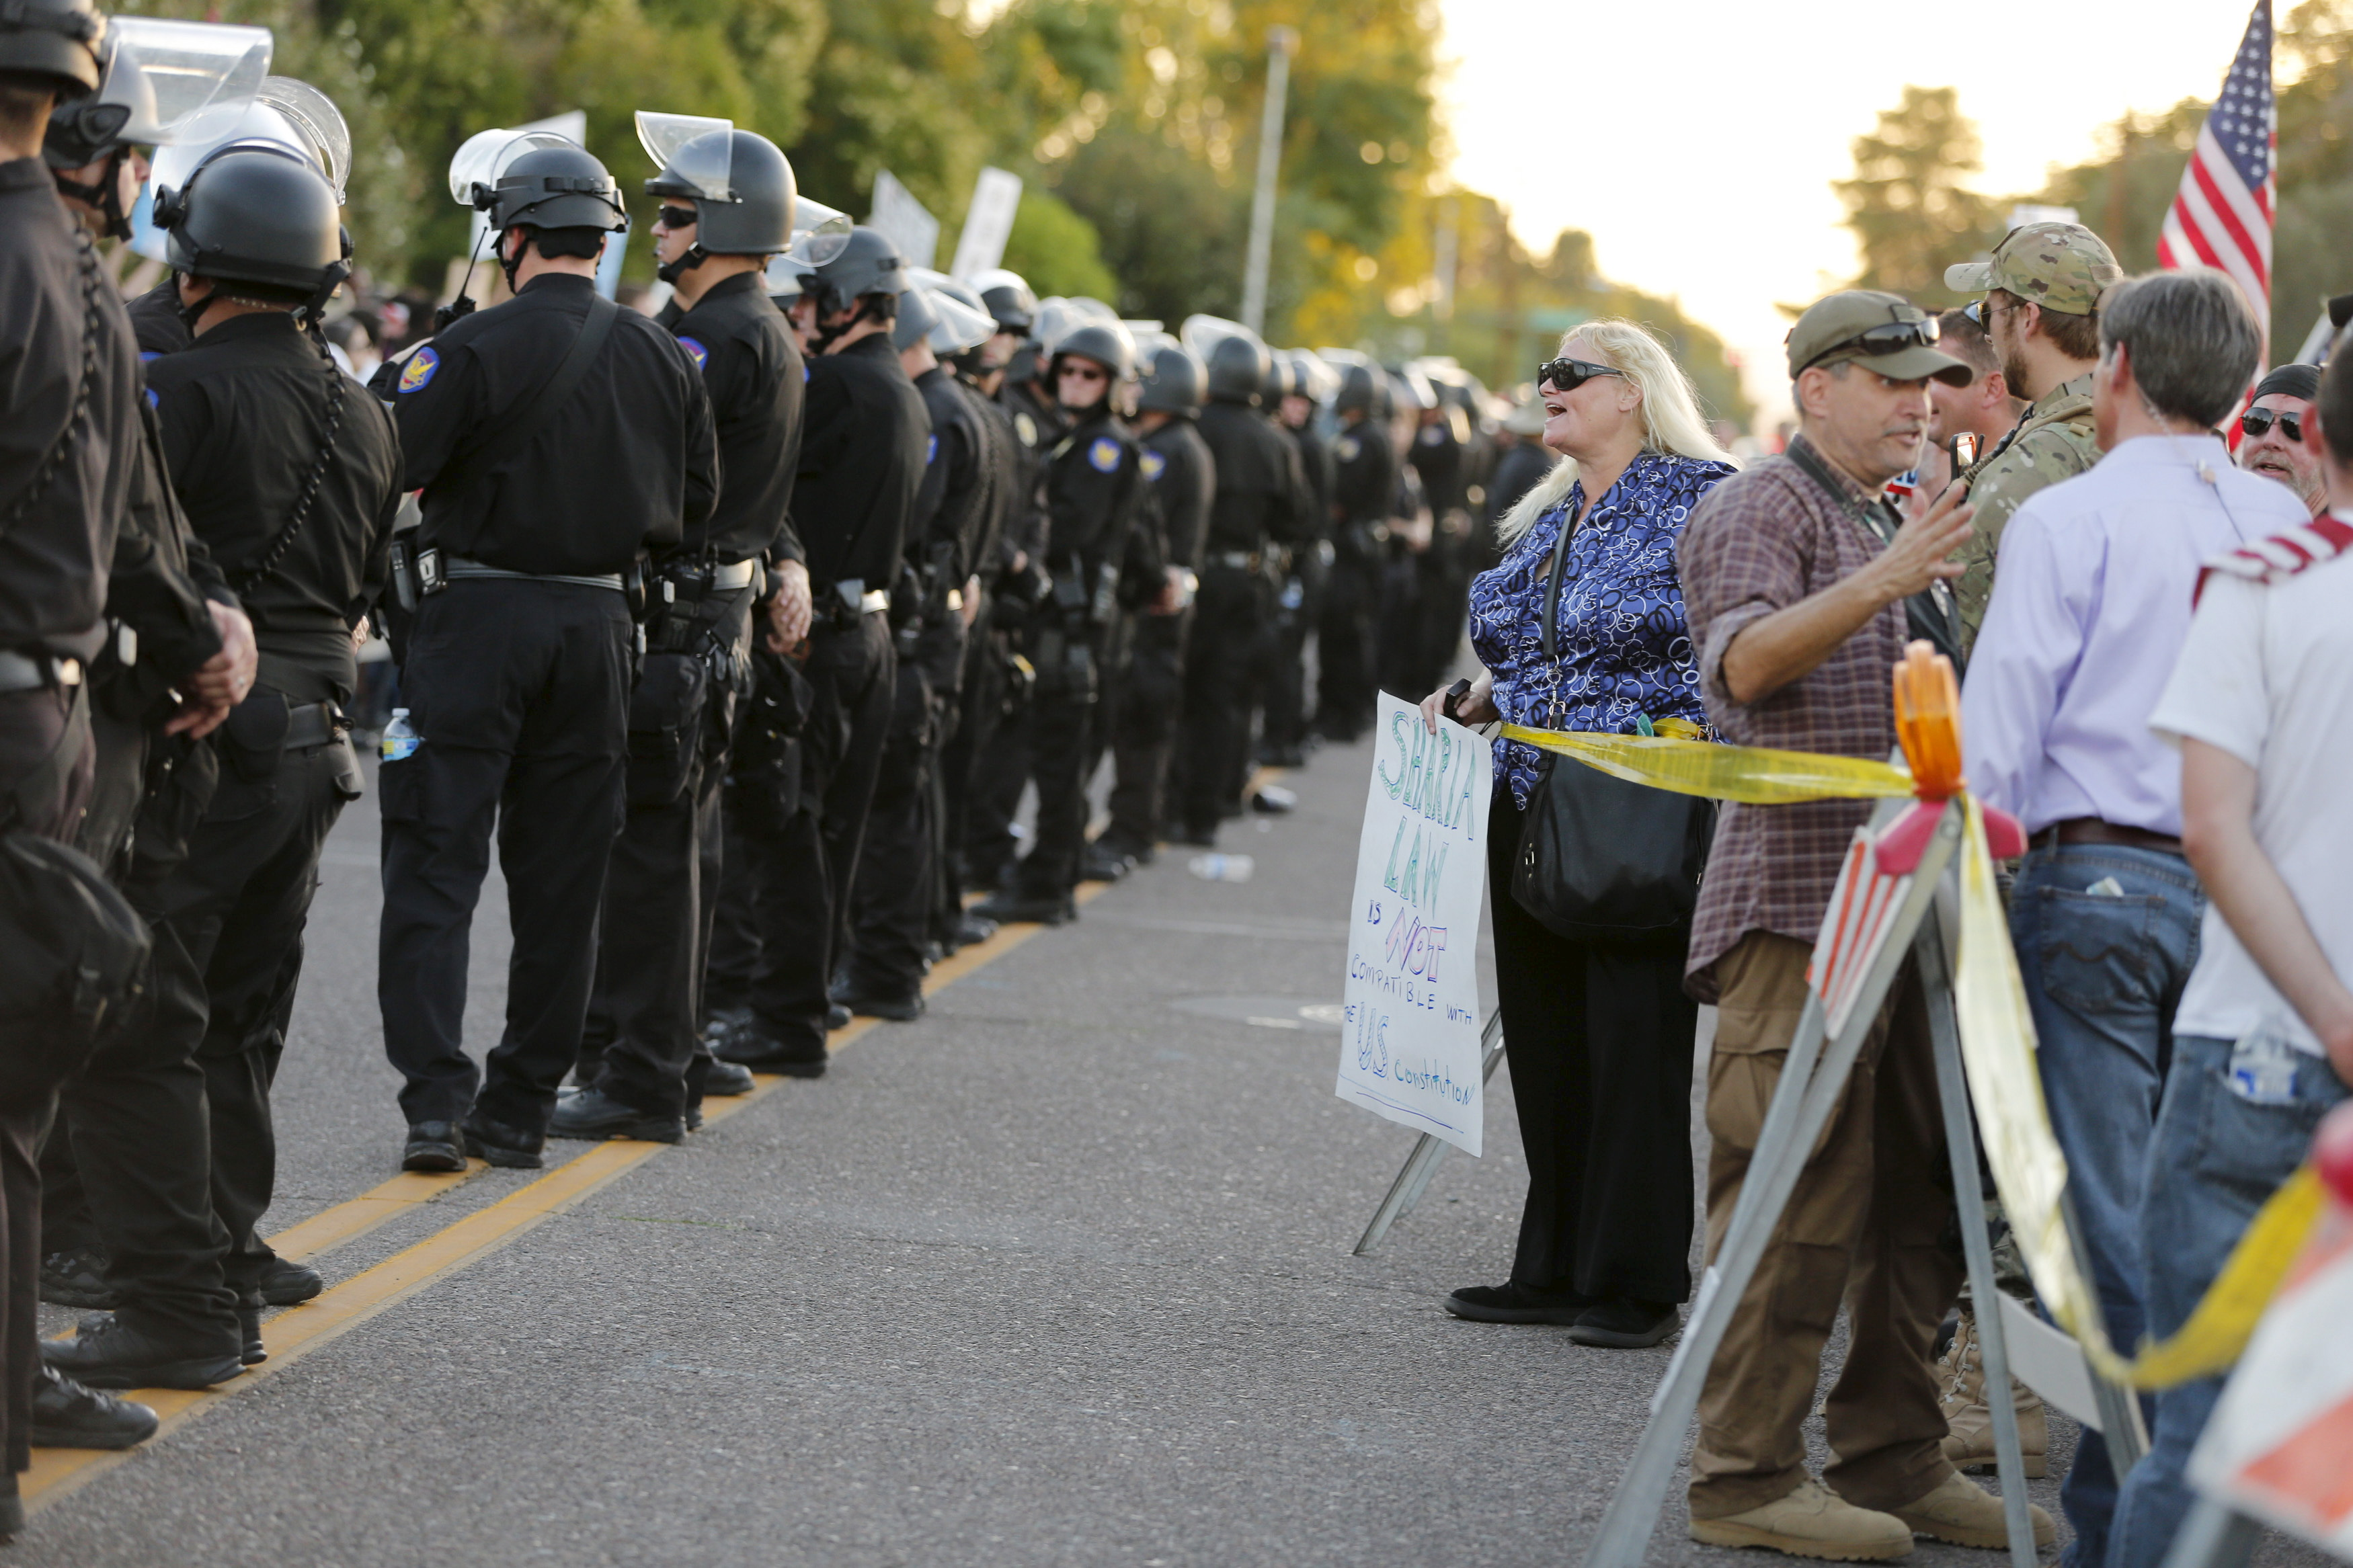 "A police line separates people attending the ""Freedom of Speech Rally Round II"" from counter demonstrators outside the Islamic Community Center of Phoenix. Police were on high alert because of a shooting at an anti-Muslim event in Texas in early May. Photo by Nancy Wiechec/Reuters."